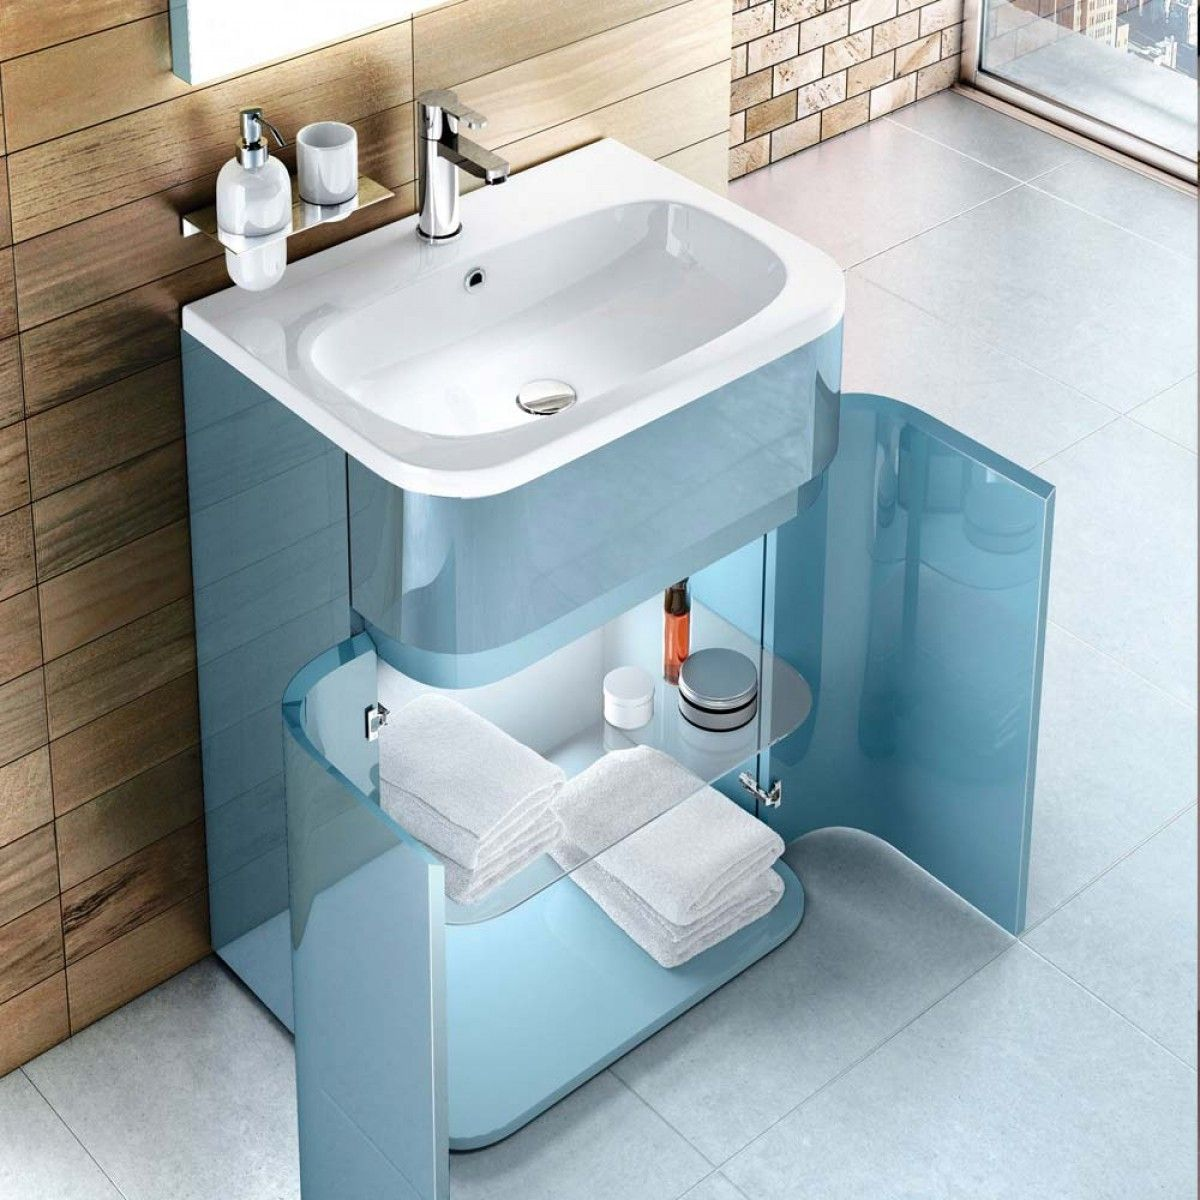 Britton Bathrooms Gullwing 600mm Floor Standing Vanity Unit | Vanity ...